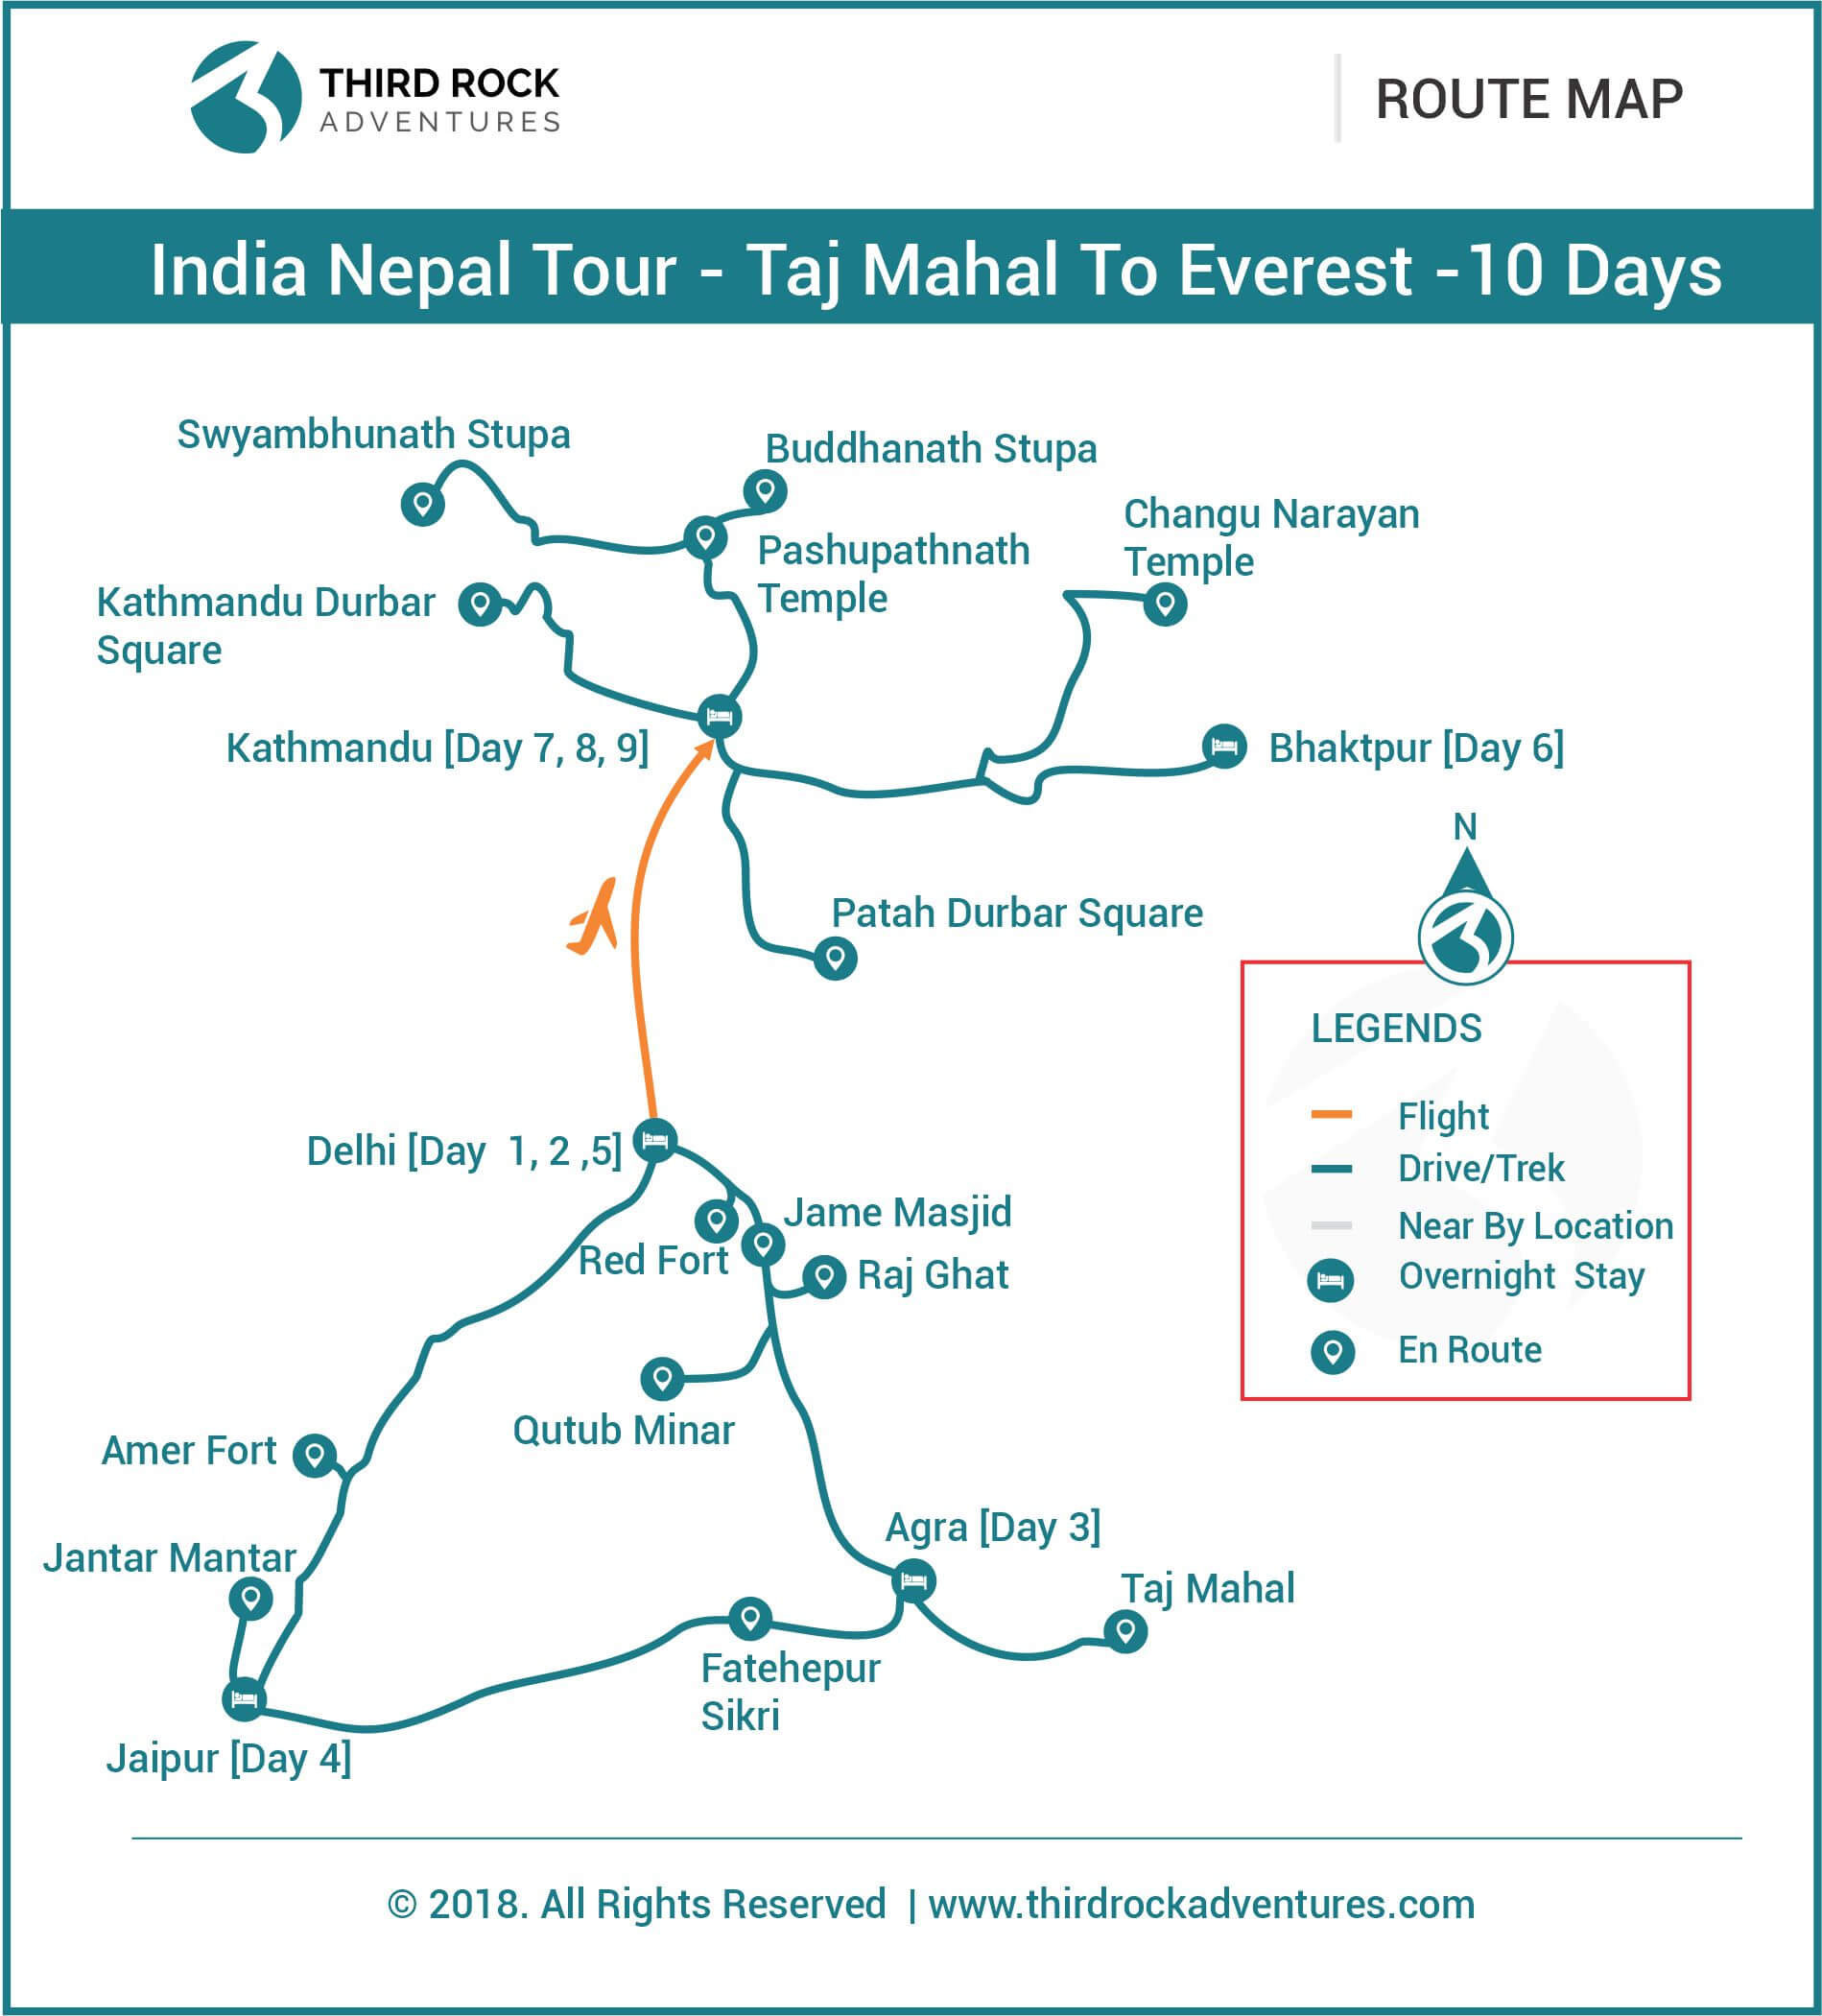 India Nepal Tour Route Map